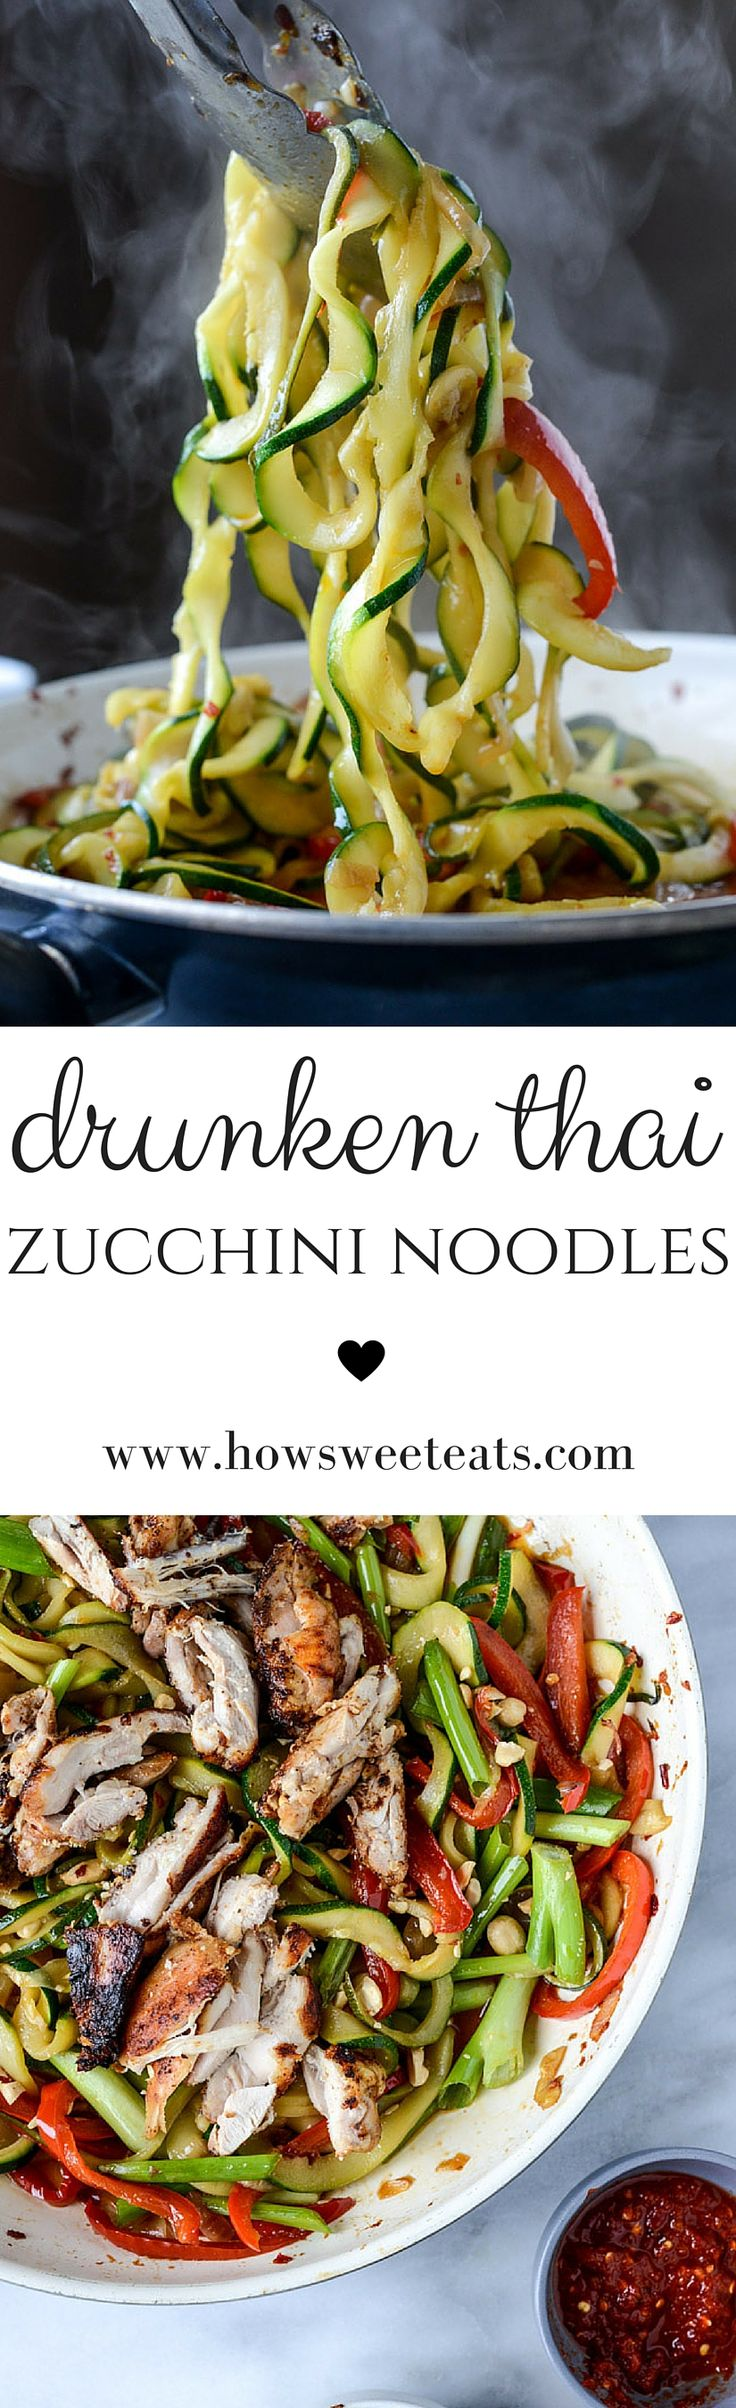 thai drunken zucchini noodles with honey chicken by @howsweeteats I howsweeteats.com